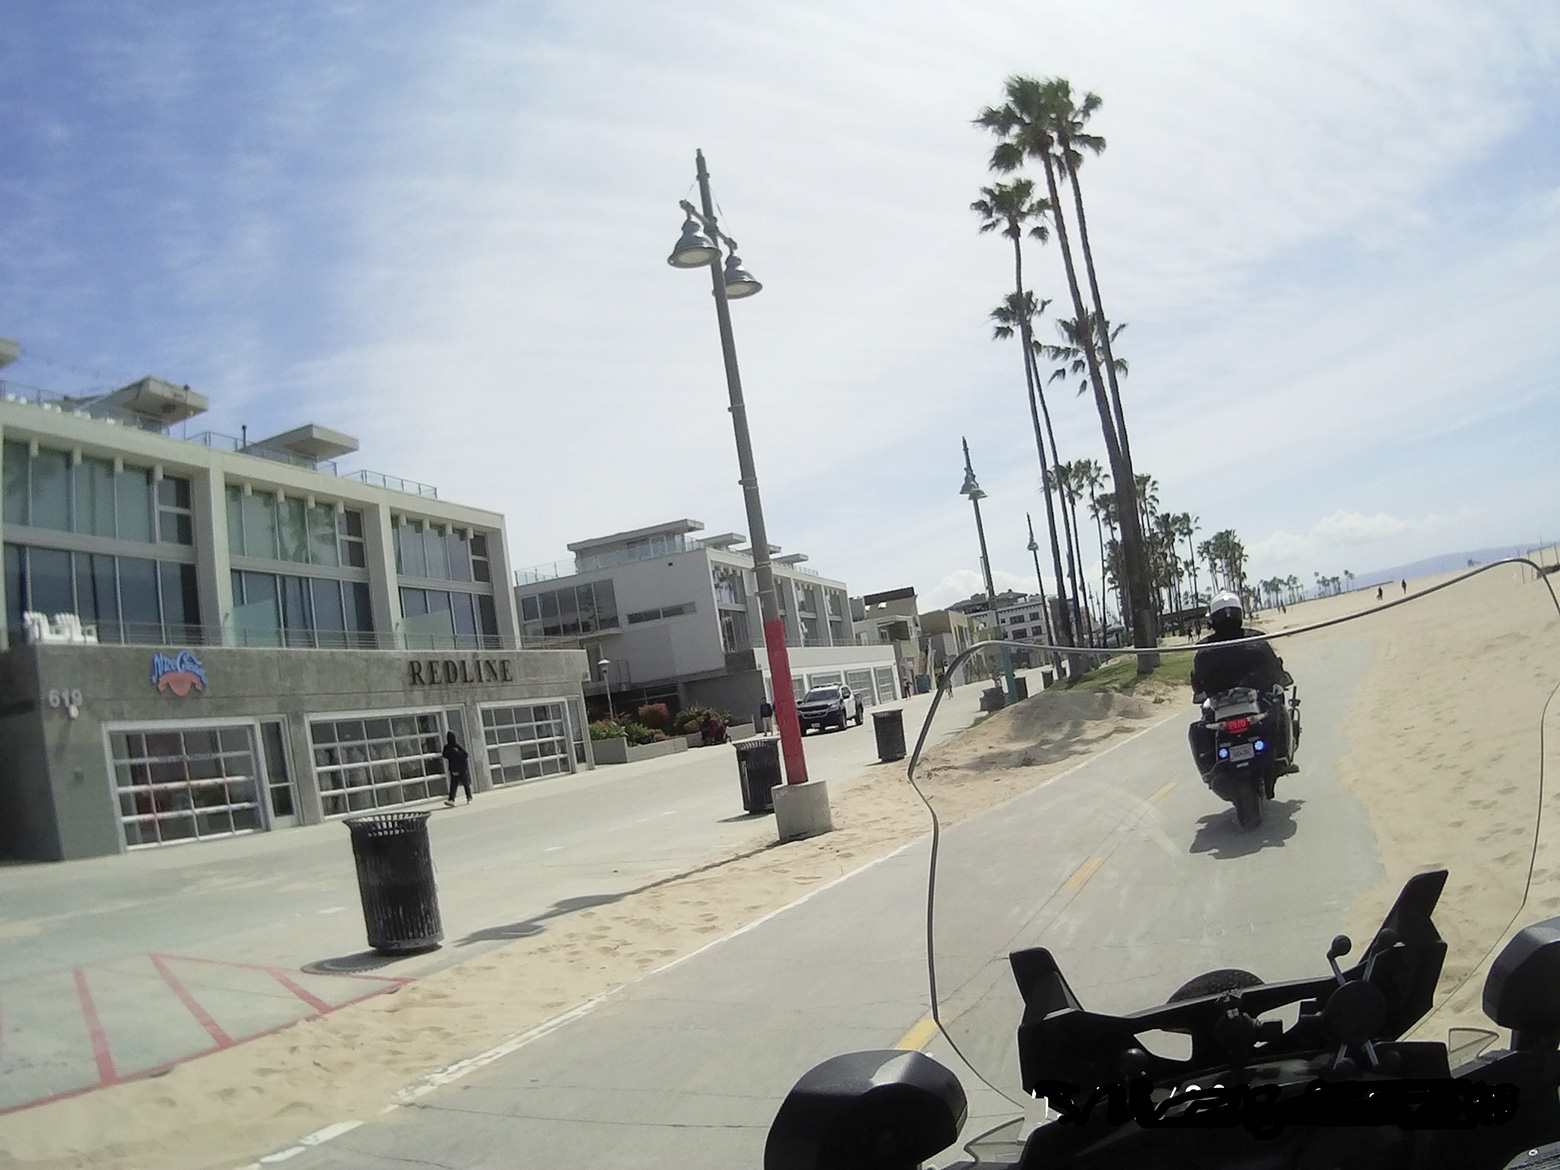 lapd-reserves-go-above-and-beyond-during-covid-19-41-reserve-motors-on-duty-on-boardwalk